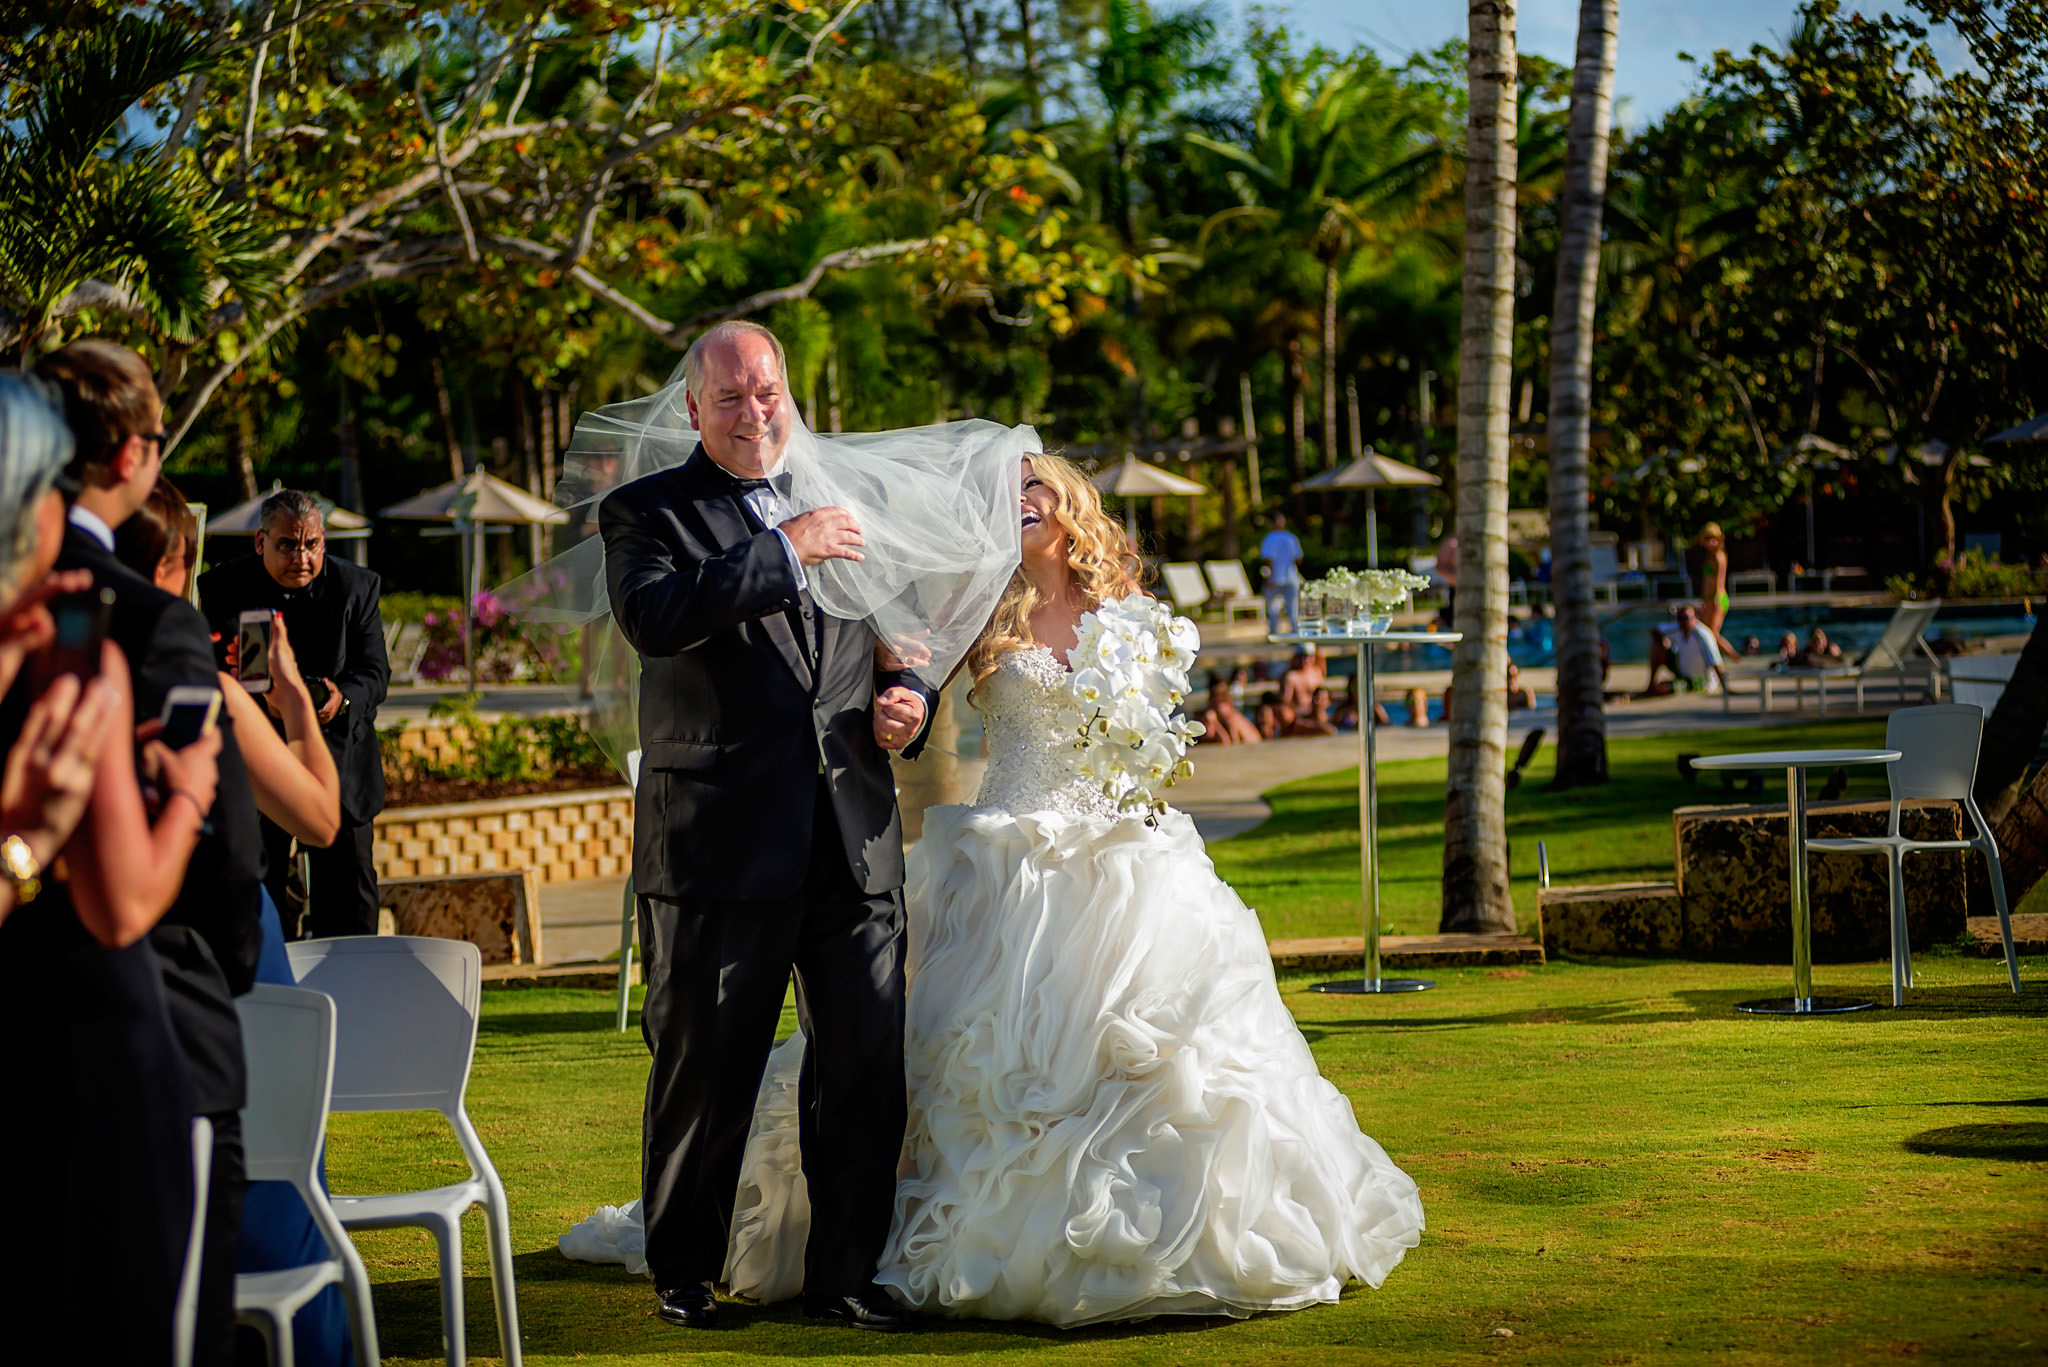 Lauren and Brad's wedding at the Dorado Beach Ritz-Carlton in Puerto Rico.